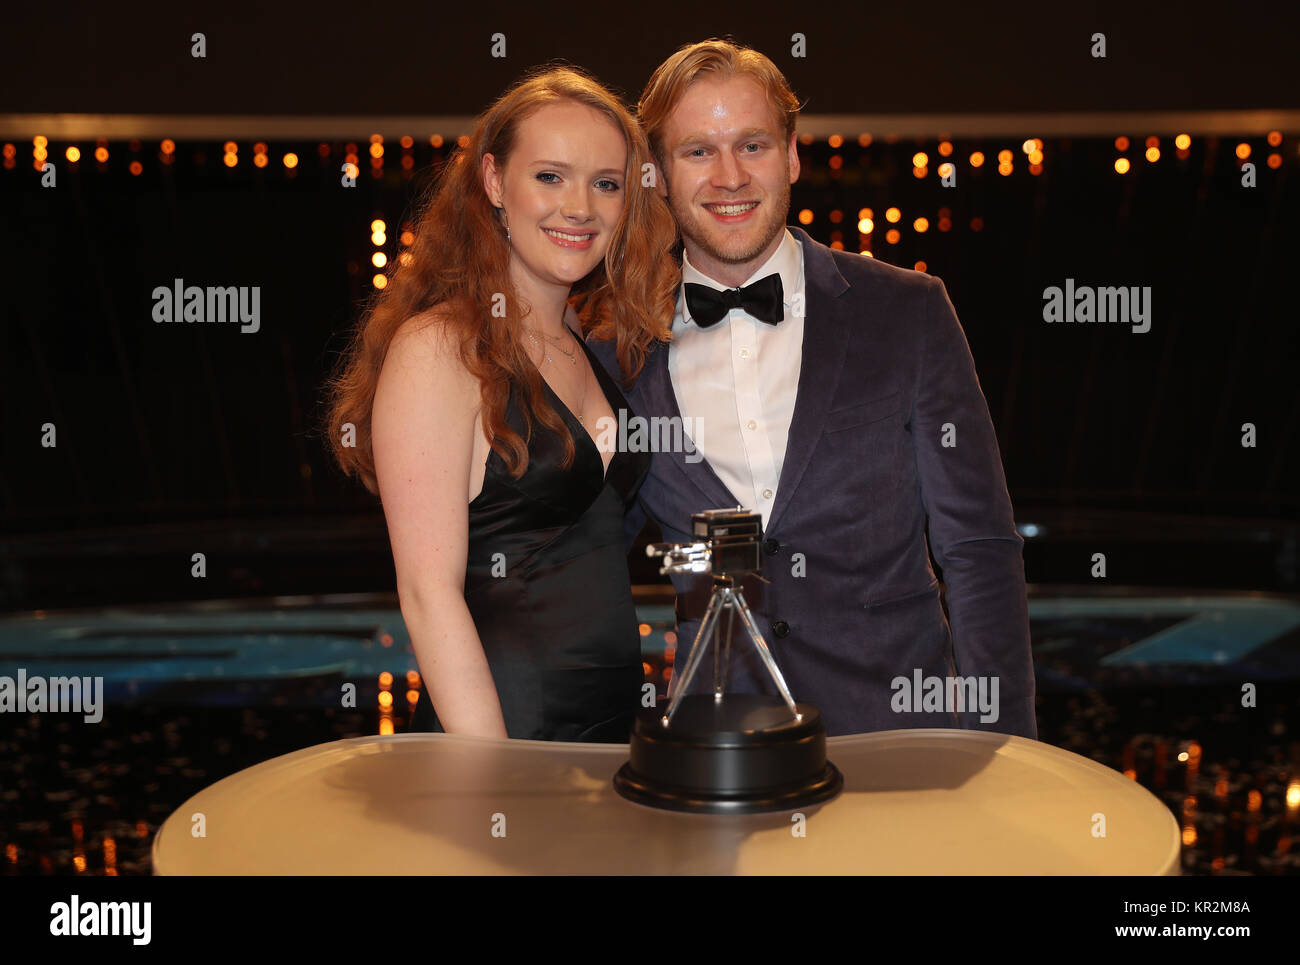 Jonny Peacock and his girlfriend sally Brown with his third place trophy during the BBC Sports Personality of the - Stock Image